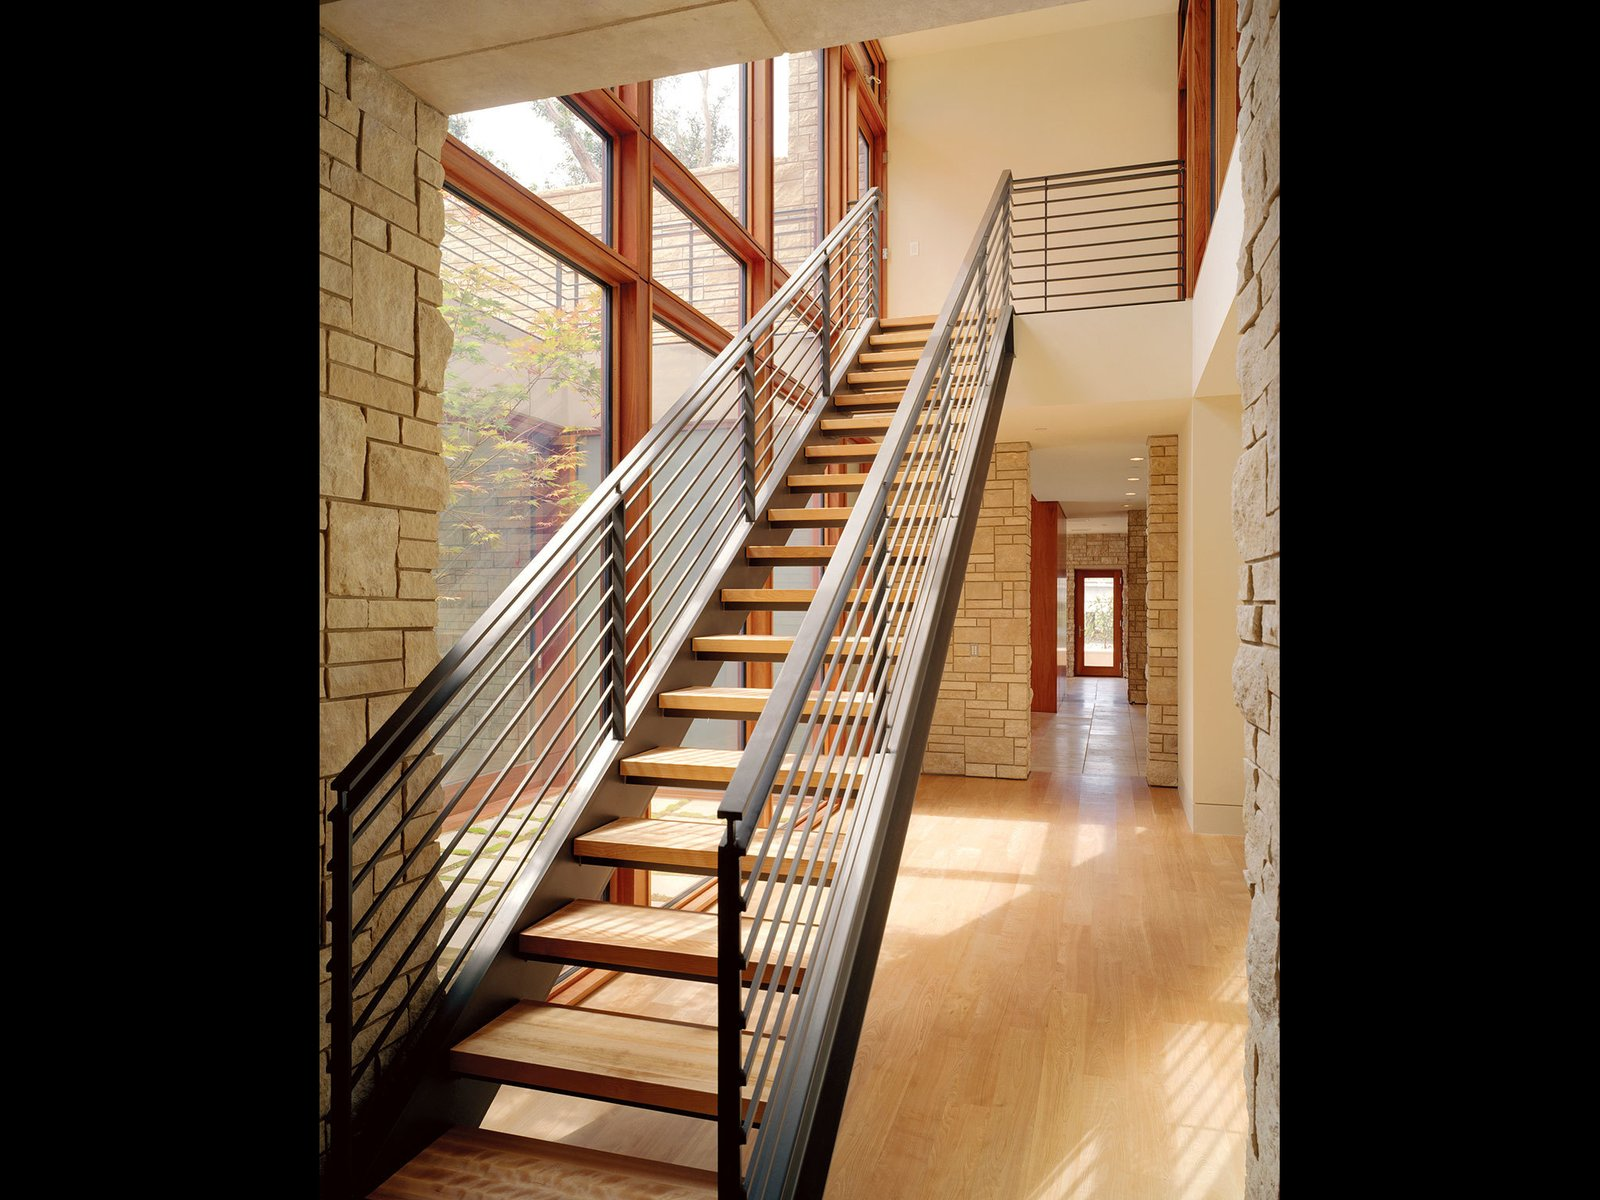 Staircase, Metal Railing, and Wood Tread Edgewood House Mill Valley, CA  Best Photos from Edgewood House